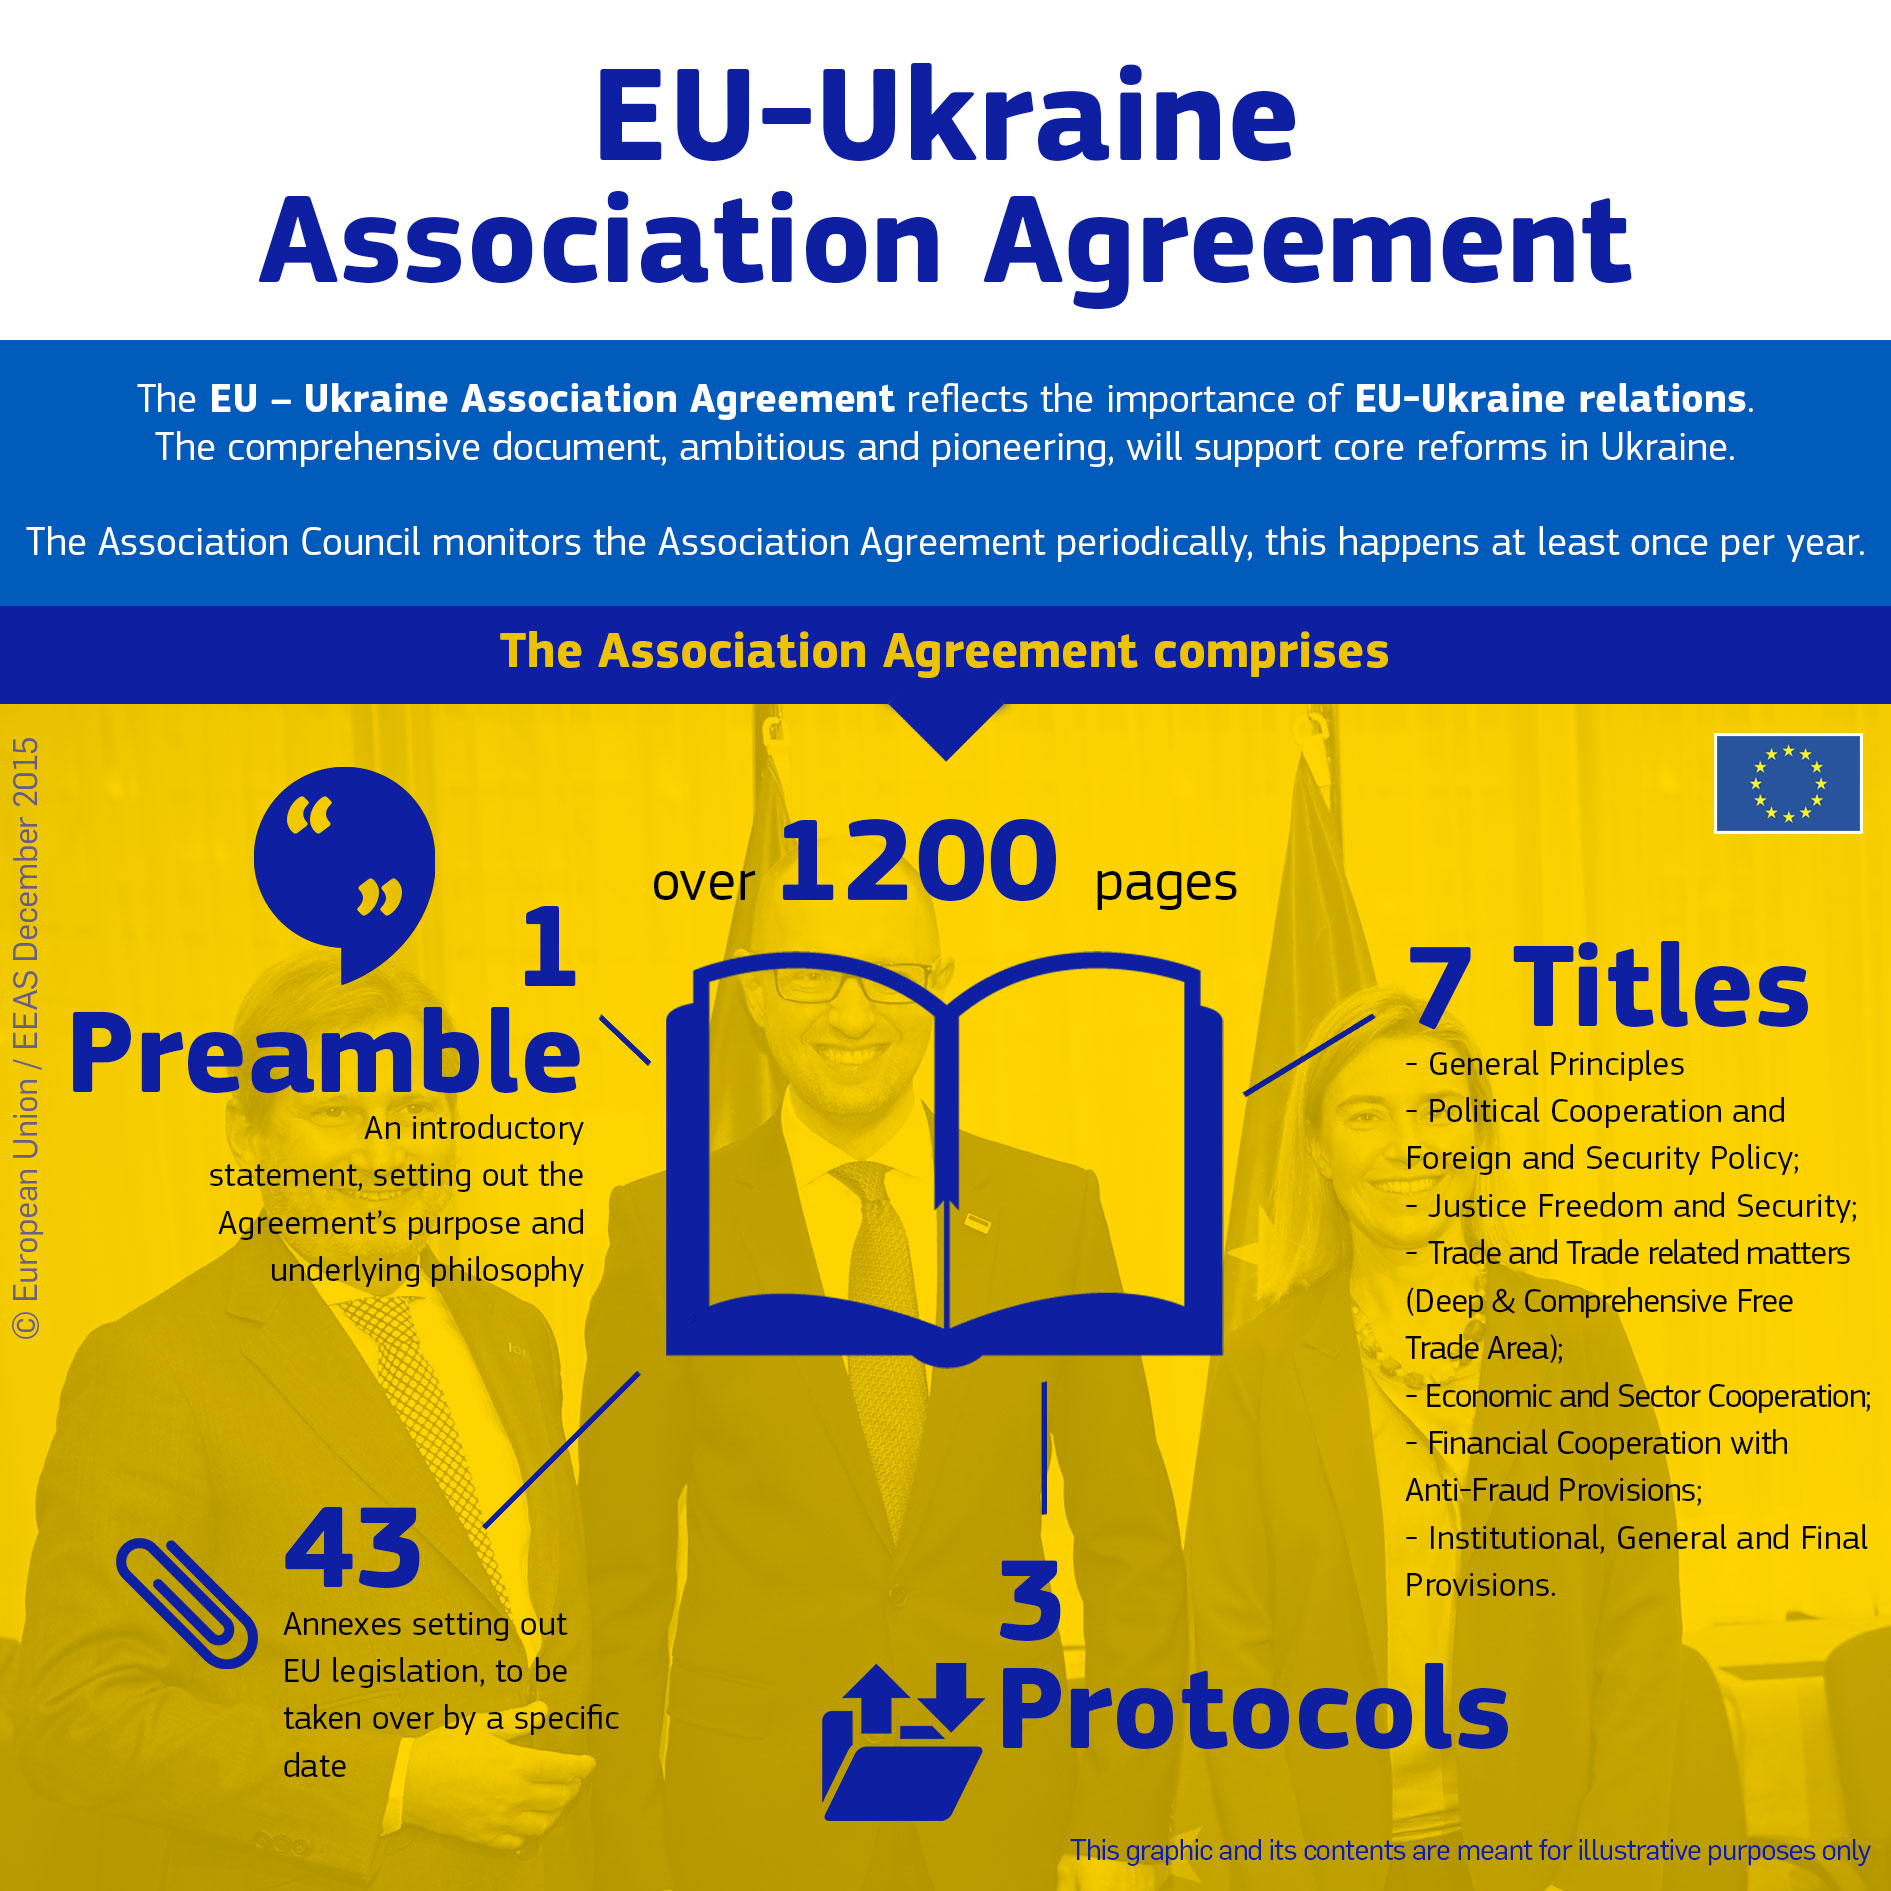 Eu Ukraine Association Council Reforms Are First And Foremost For